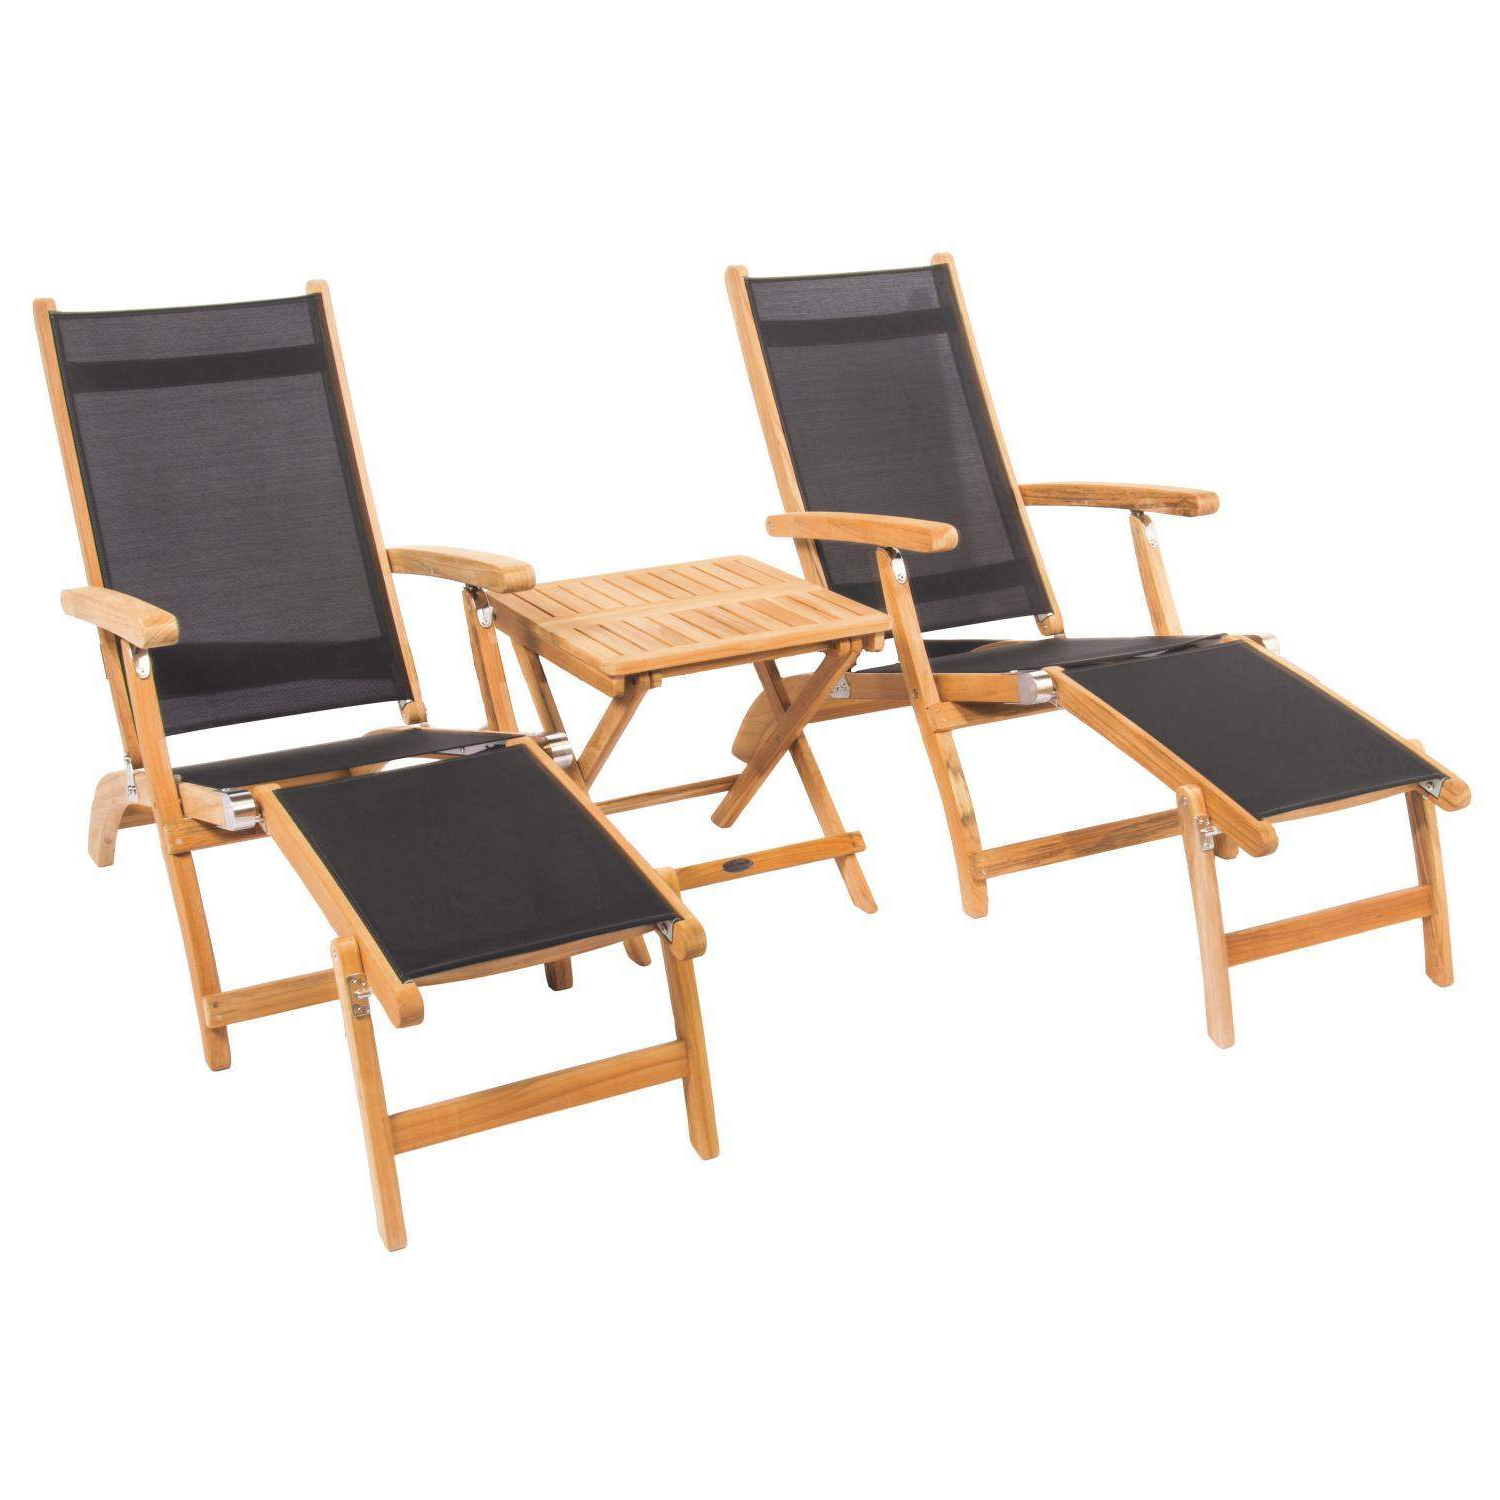 Widely Used Steamer 3 Piece Teak Patio Chaise Lounge Set W/ Side Table With Nautical 3 Piece Outdoor Chaise Lounge Sets With Table (Gallery 23 of 25)